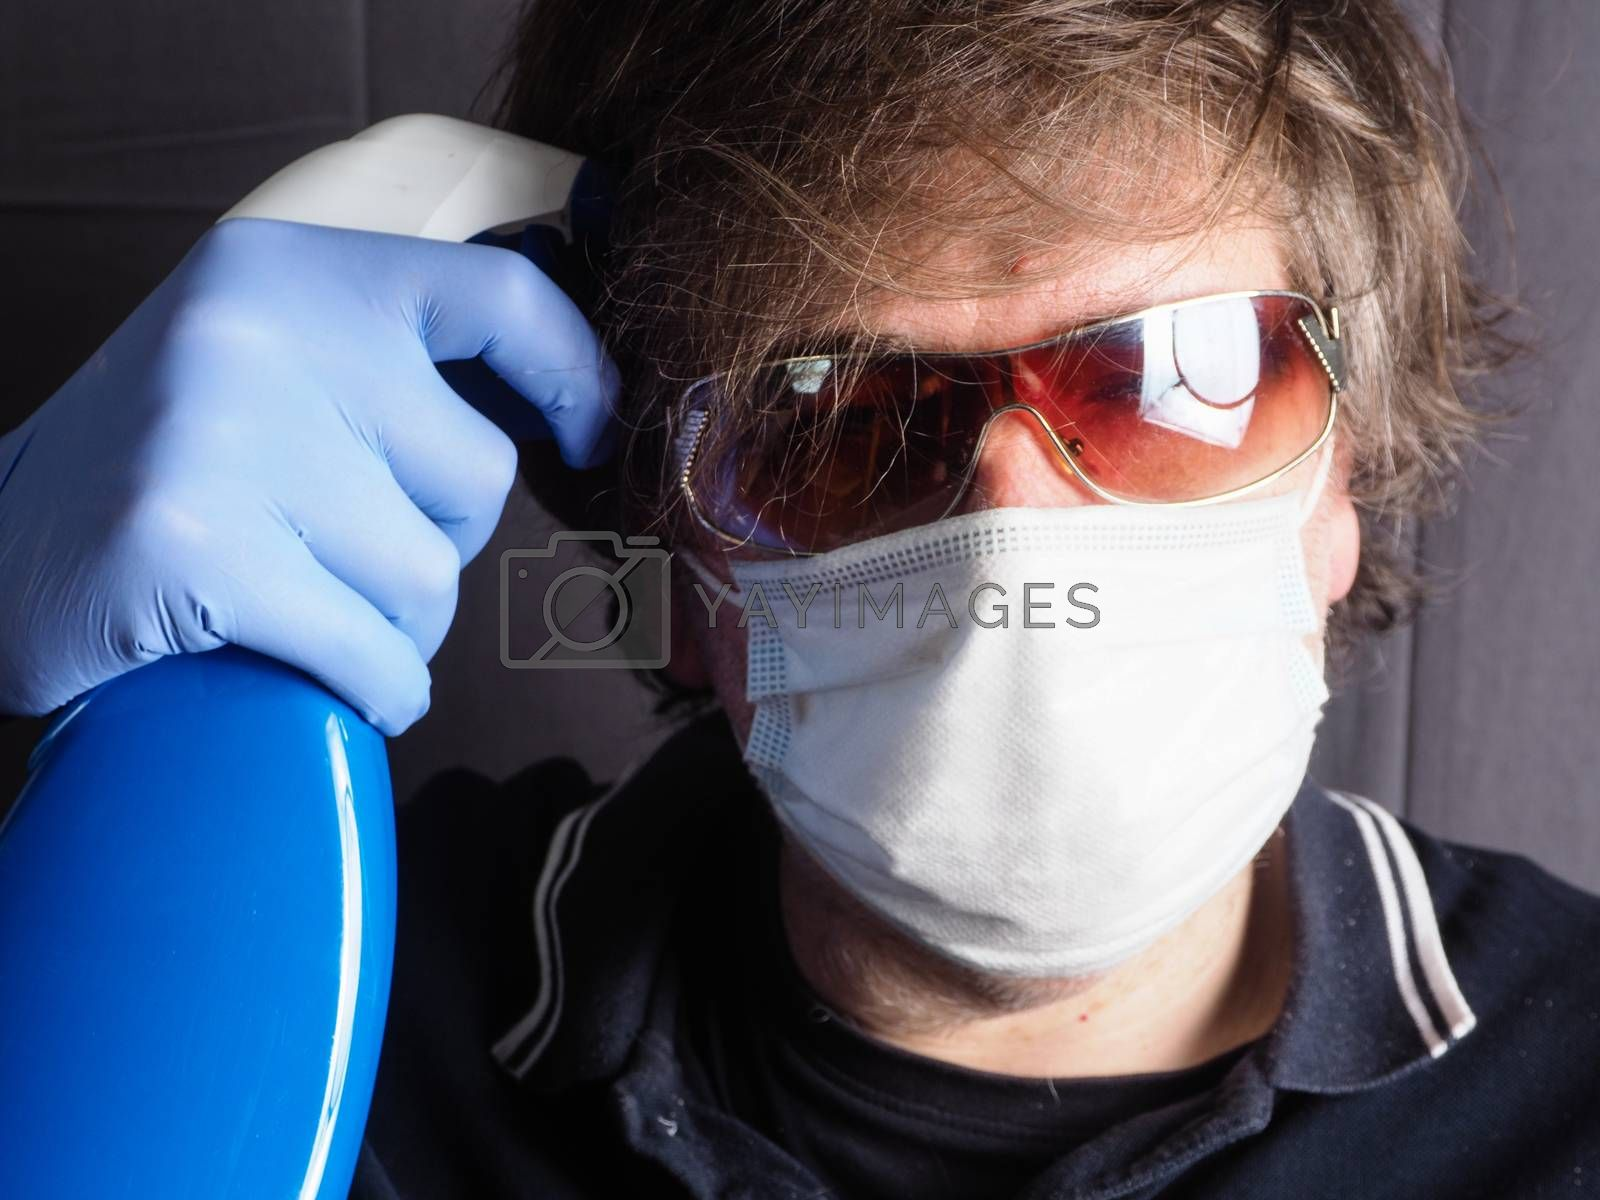 funny humorous adult caucasian 40s man wearing protection surgical face mask , blue latex gloves, and sun glasses pointing the head with blue sanitizer cleaning  bottle as a weapon as tired of confinement covid concept.